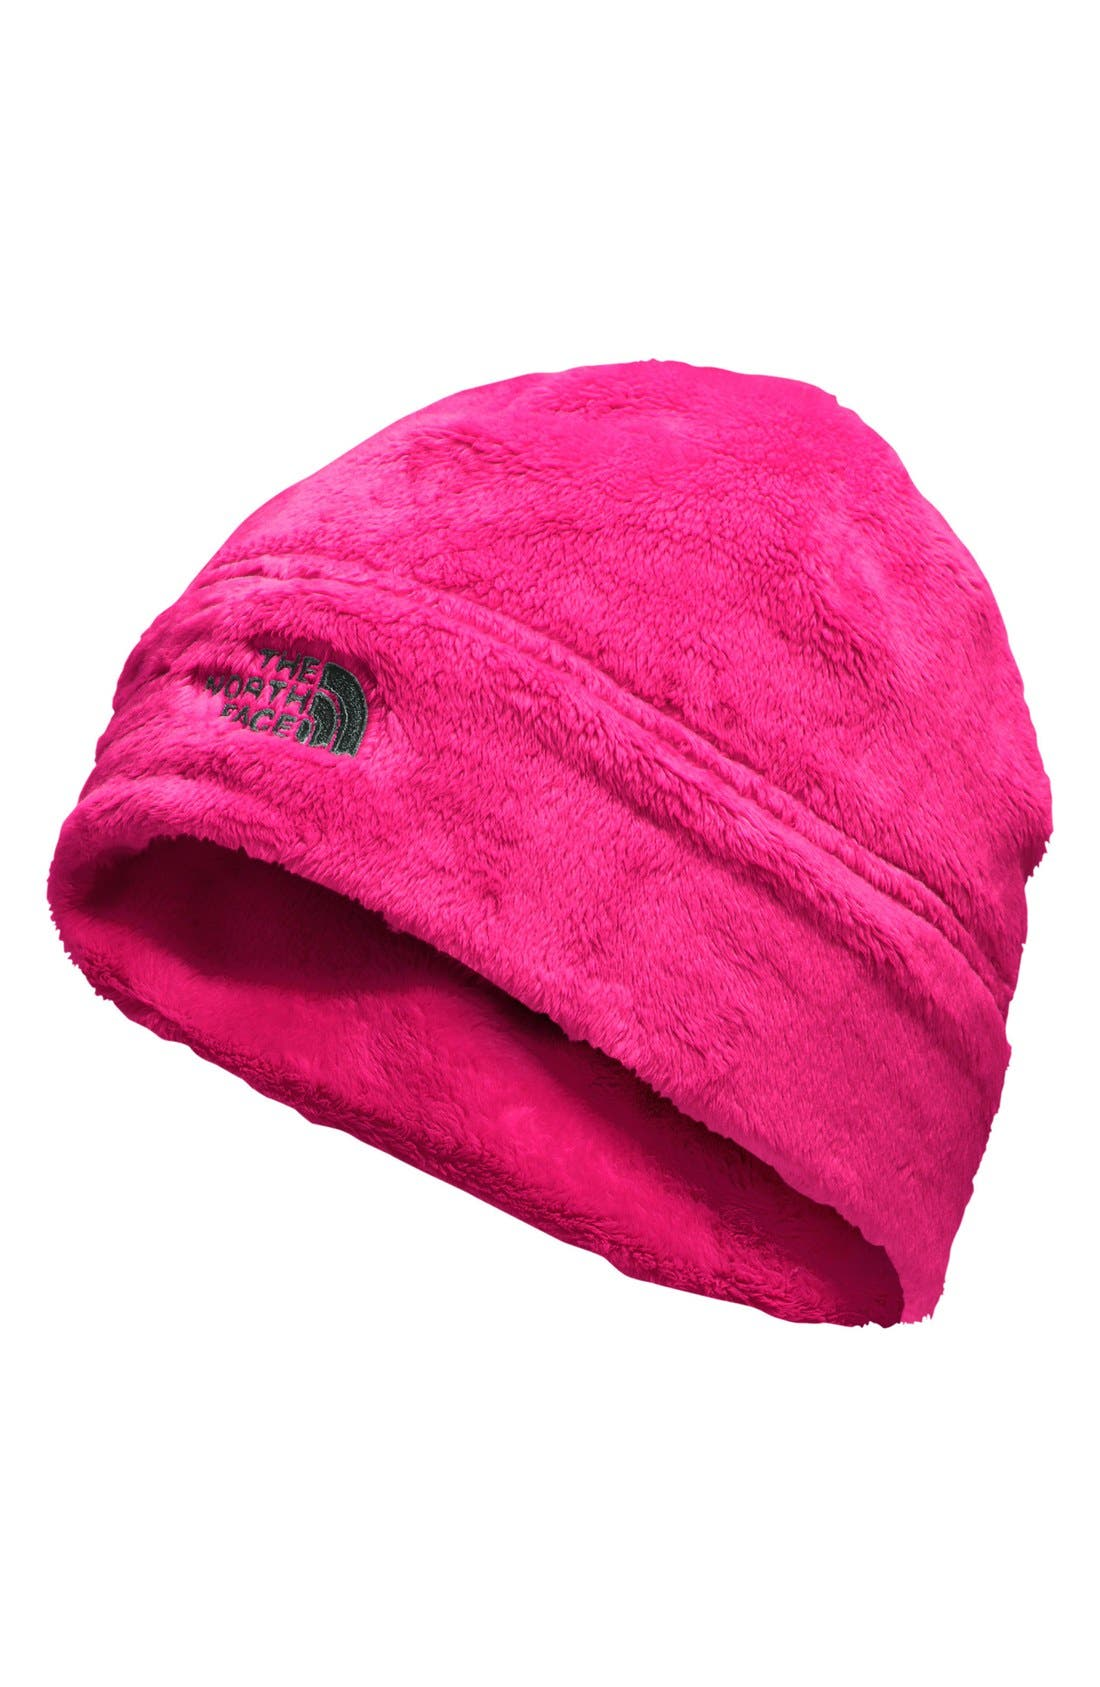 Main Image - The North Face 'Denali' Thermal Fleece Beanie